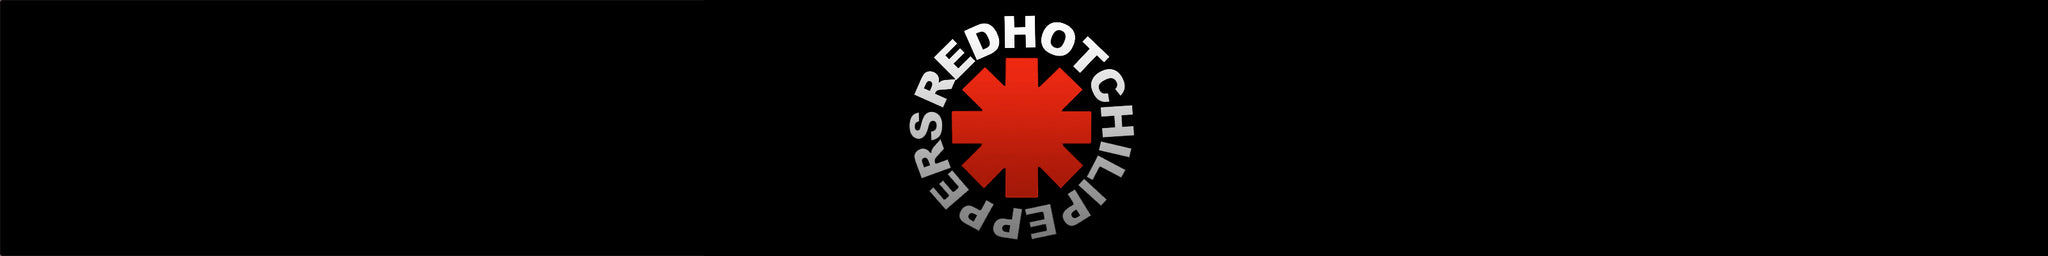 Shop Red Hot Chili Peppers